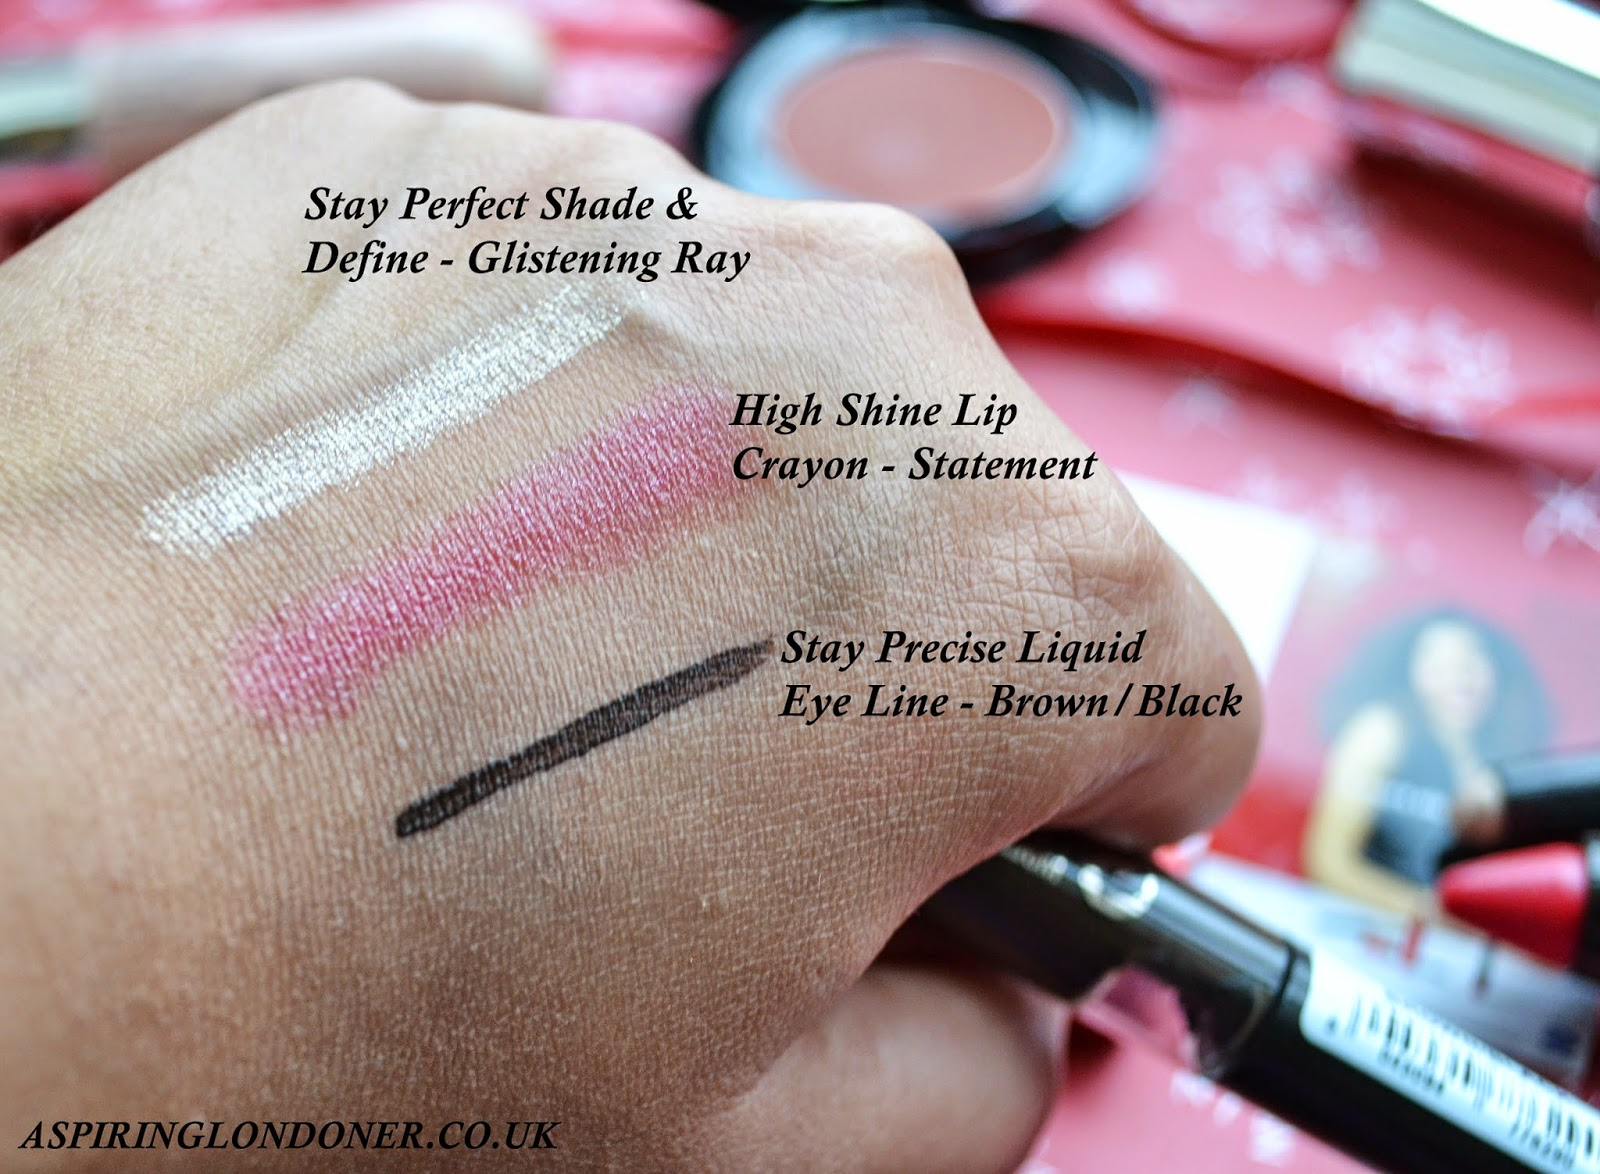 No7 High Shine Lip Crayon Statement, Stay Perfect Shade & Define, & Stay Precise Liquid Liner Review Swatch  - Aspiring Londoner